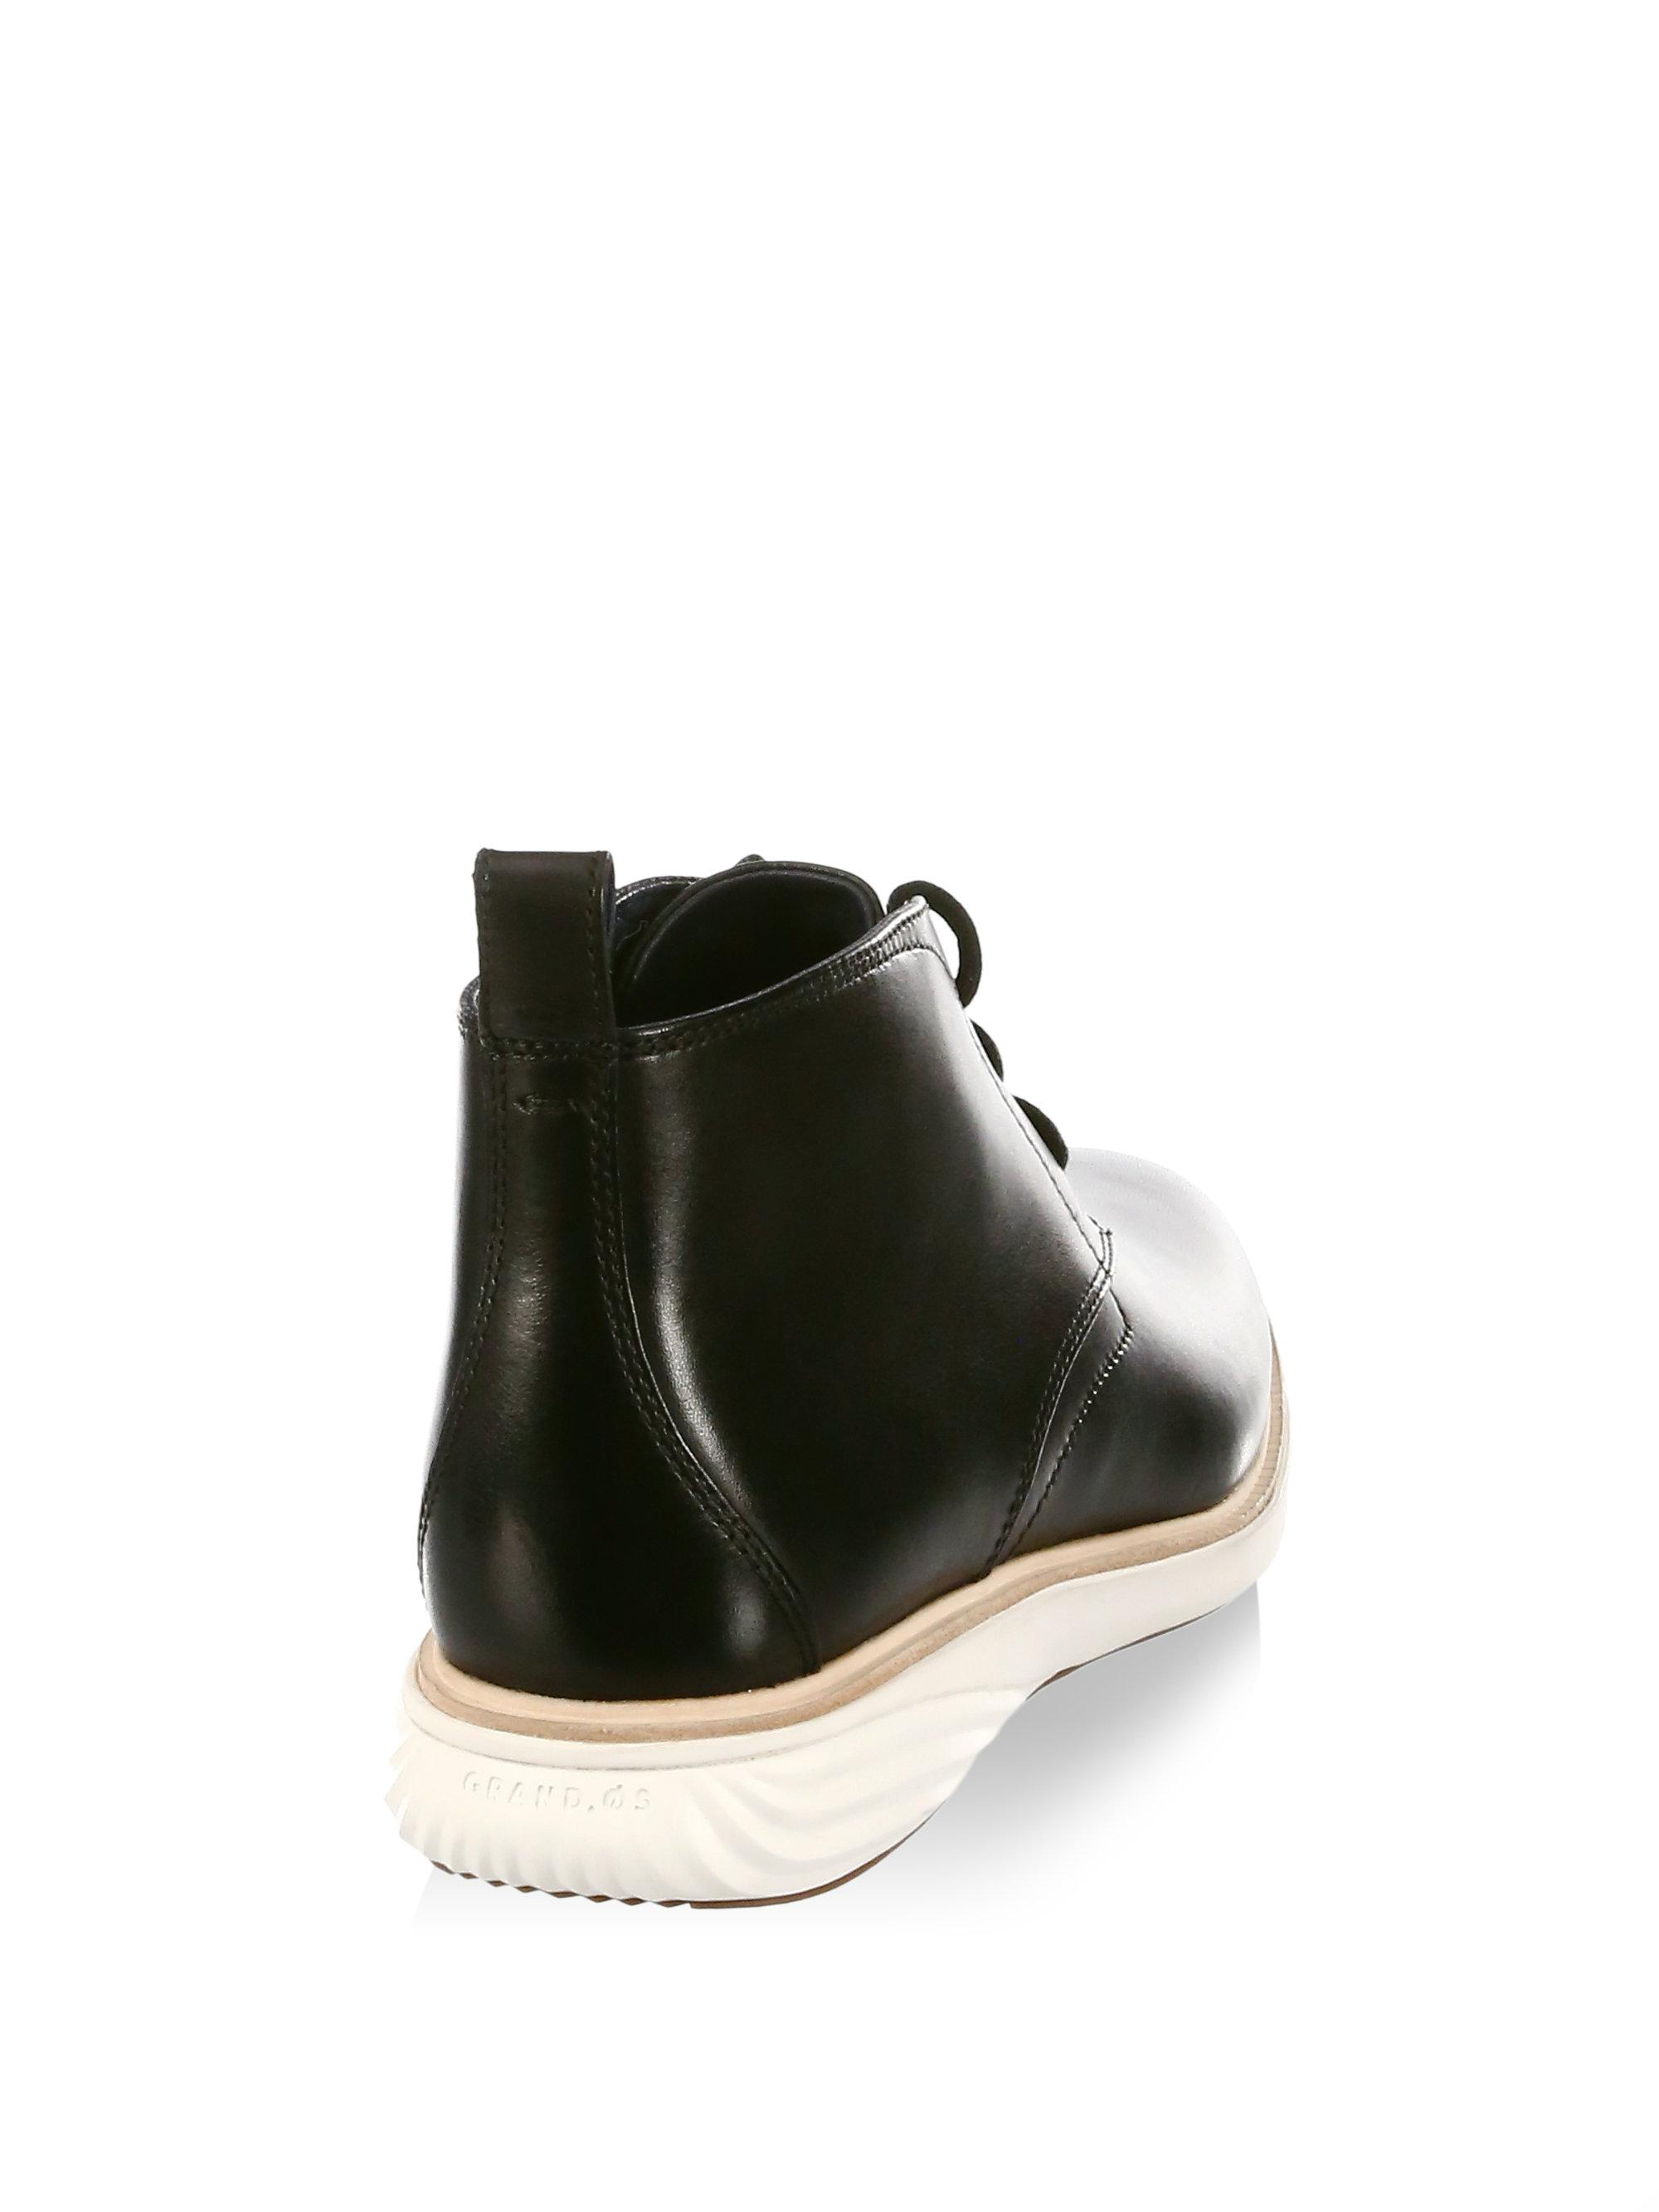 Cole Haan GrandEvolution Round Toe Leather Chukka Boots zN2Kq6UAMs